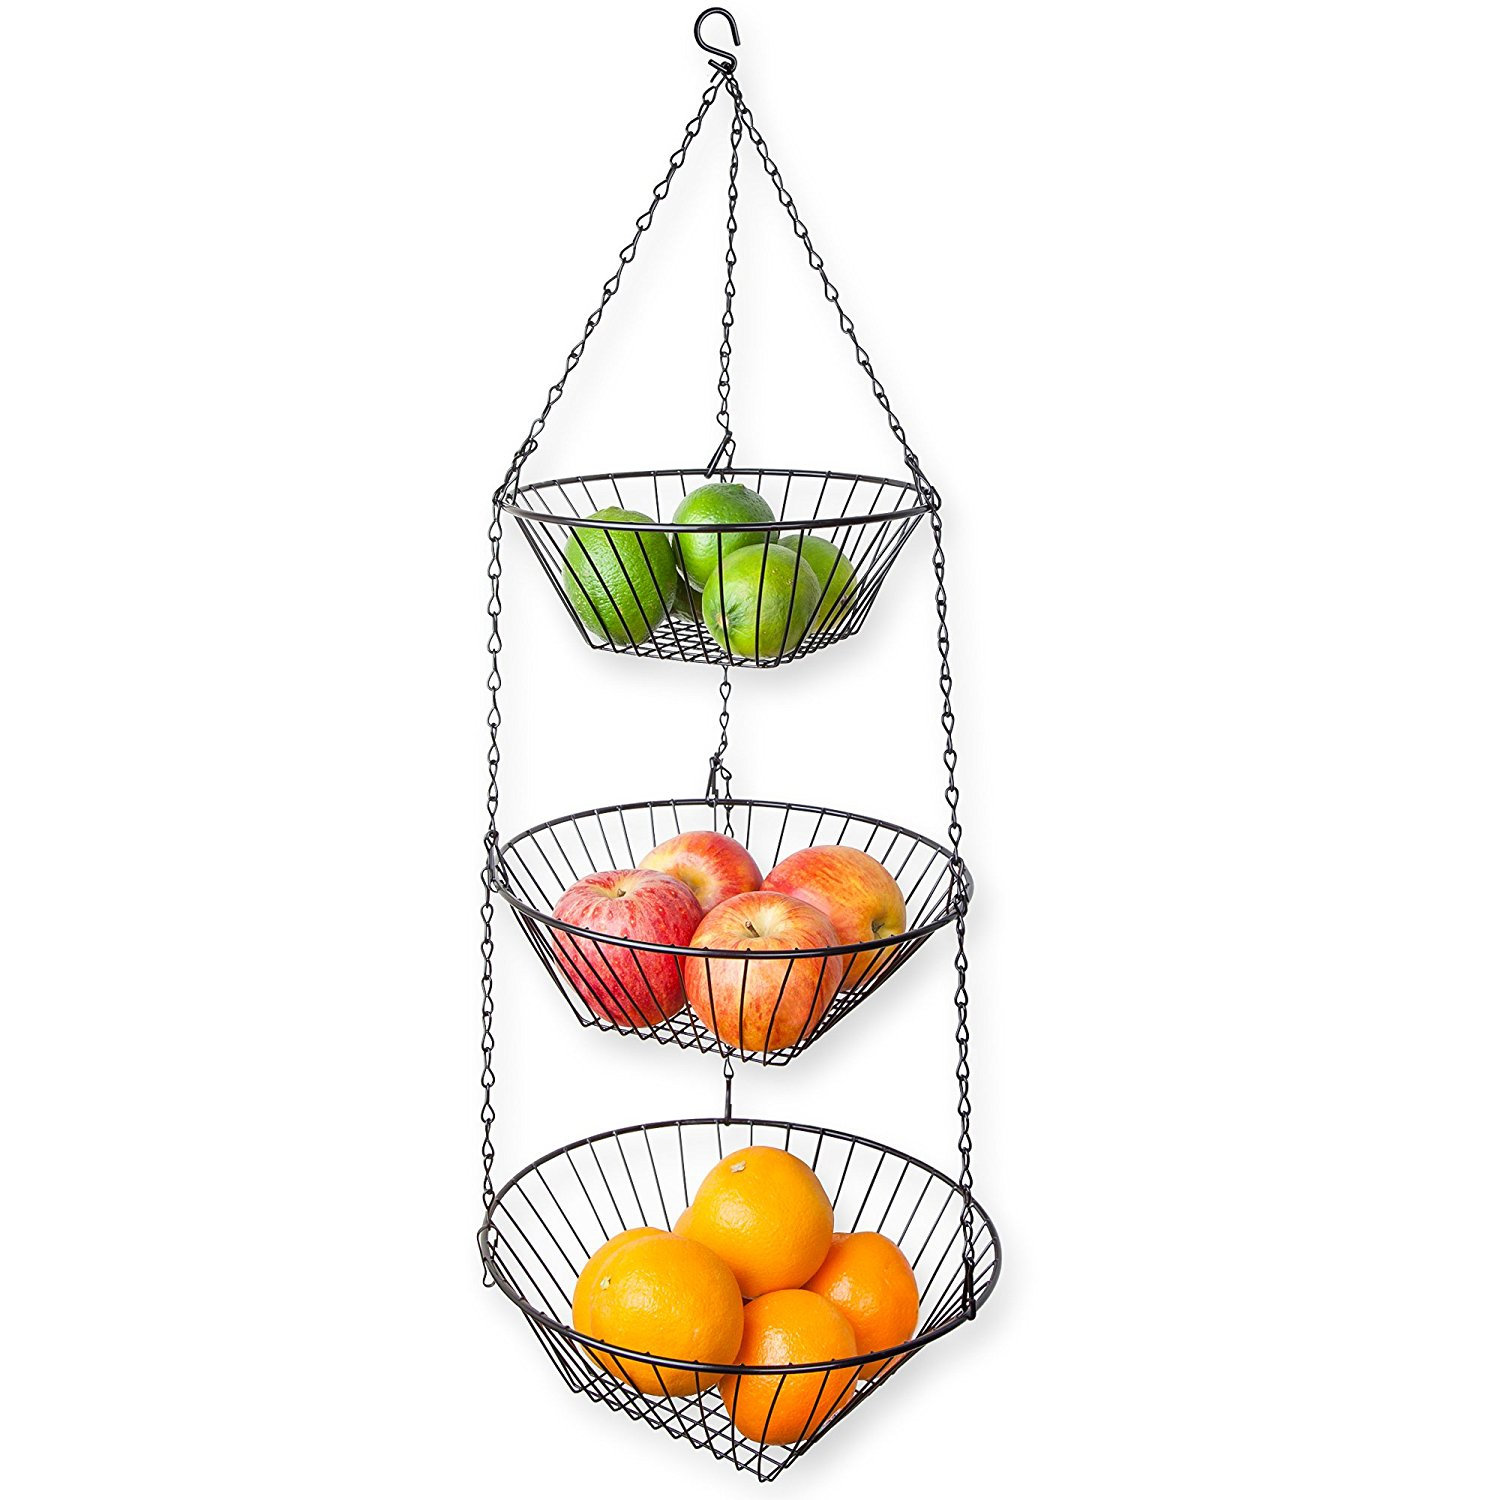 1500x1500 Winston Porter Home Basics Tier Wire Hanging Kitchen Fruit